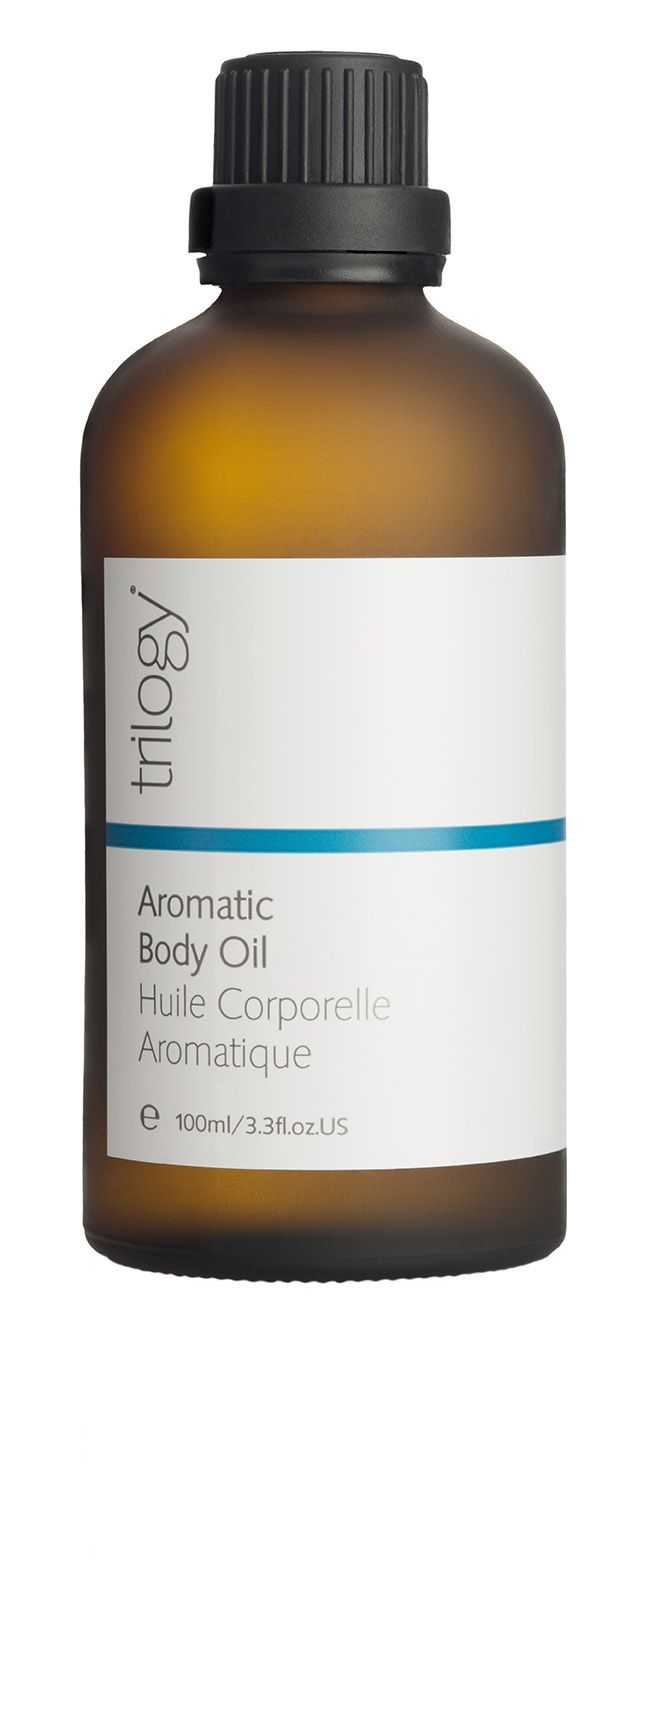 Trilogy Aromatic Body Oil: A fast-absorbing blend of nature's most nutritious pure plant oils to moisturise, soften and nourish. https://www.trilogyproducts.com/products/aromatic-body-oil/